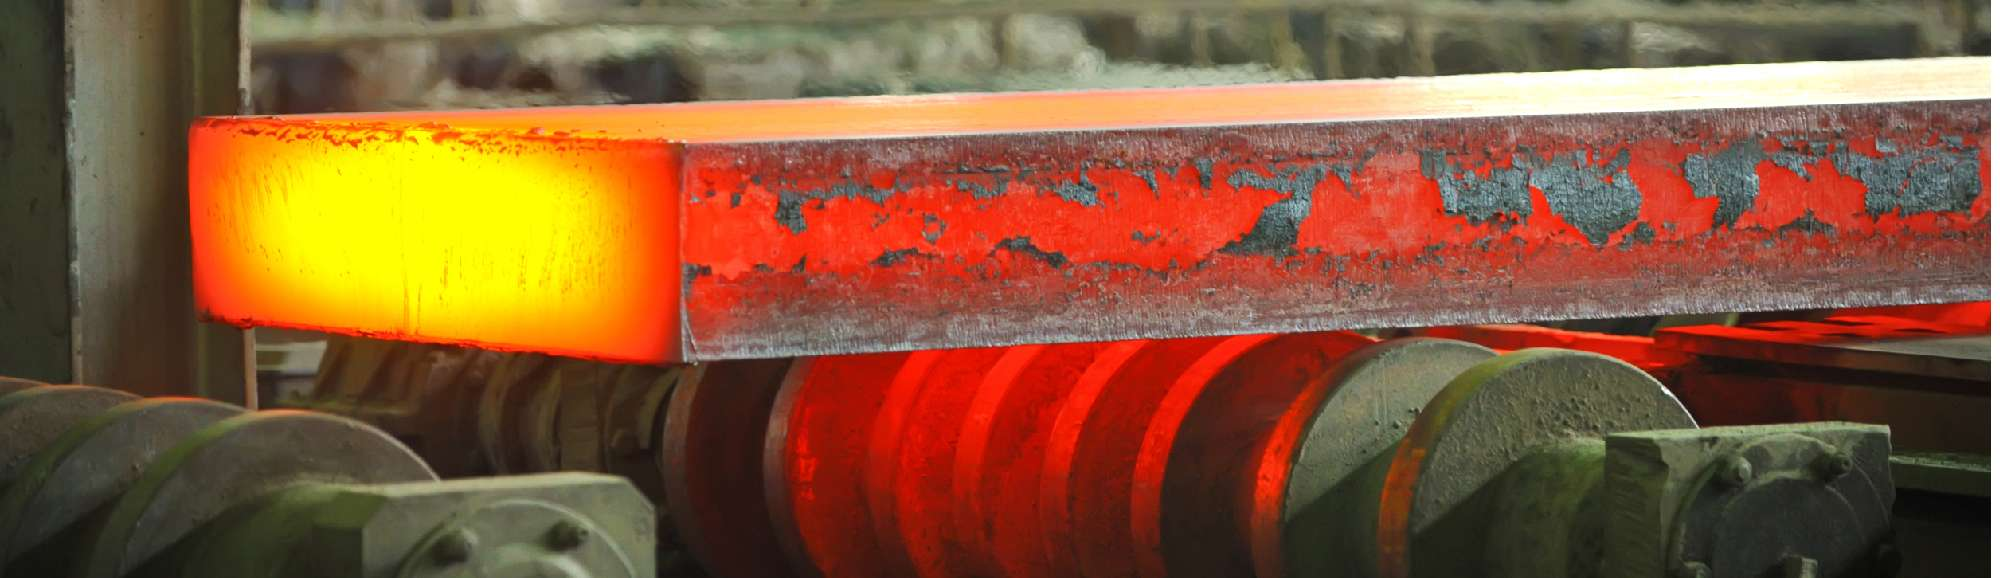 High Nickel Alloy Stainless Steel A286-431